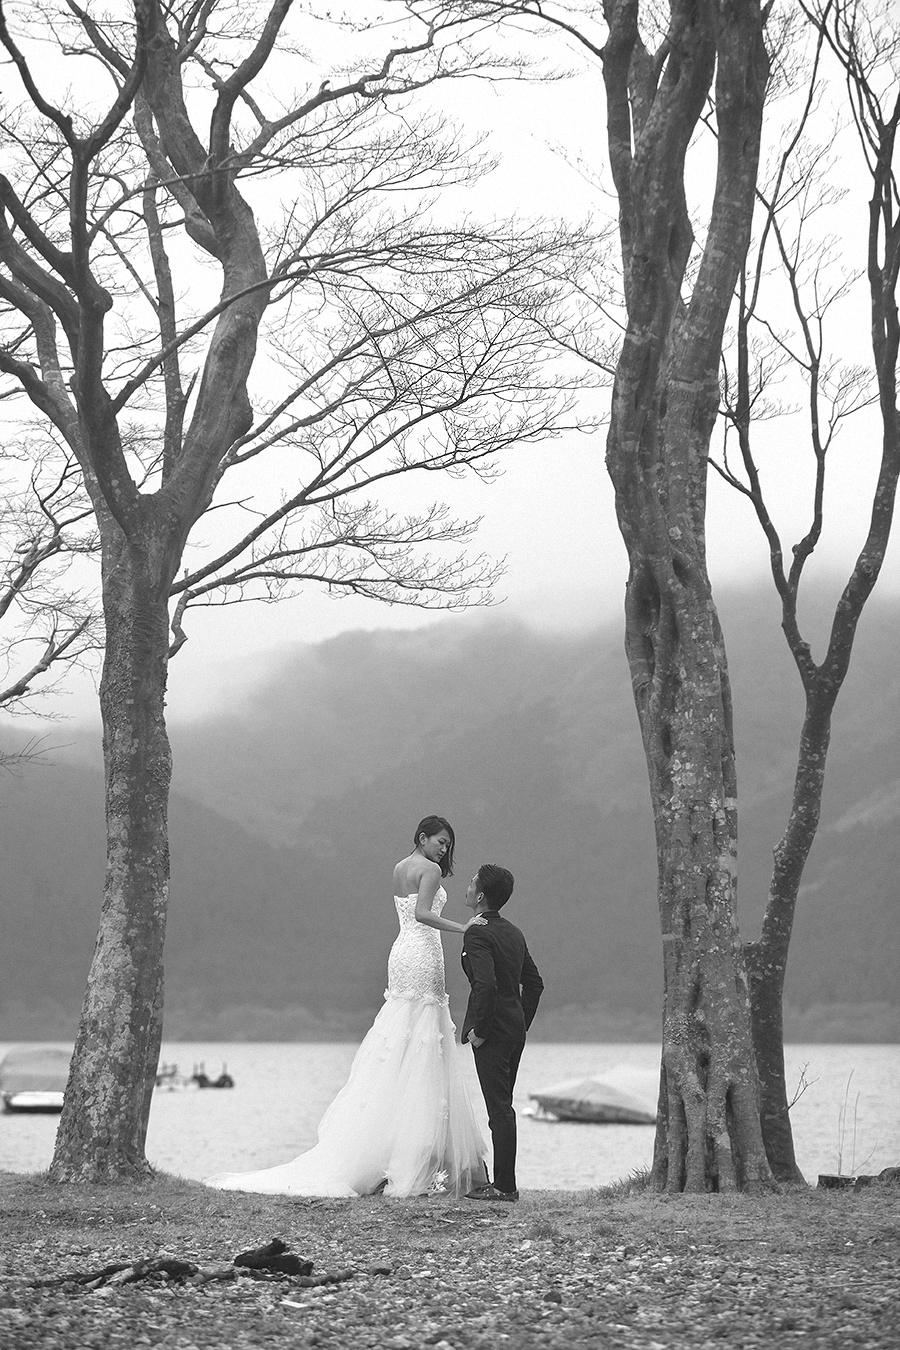 tokyo hakone japan spring sakura . engagement wedding photography by kurt ahs . ns + eu . 0379.jpg